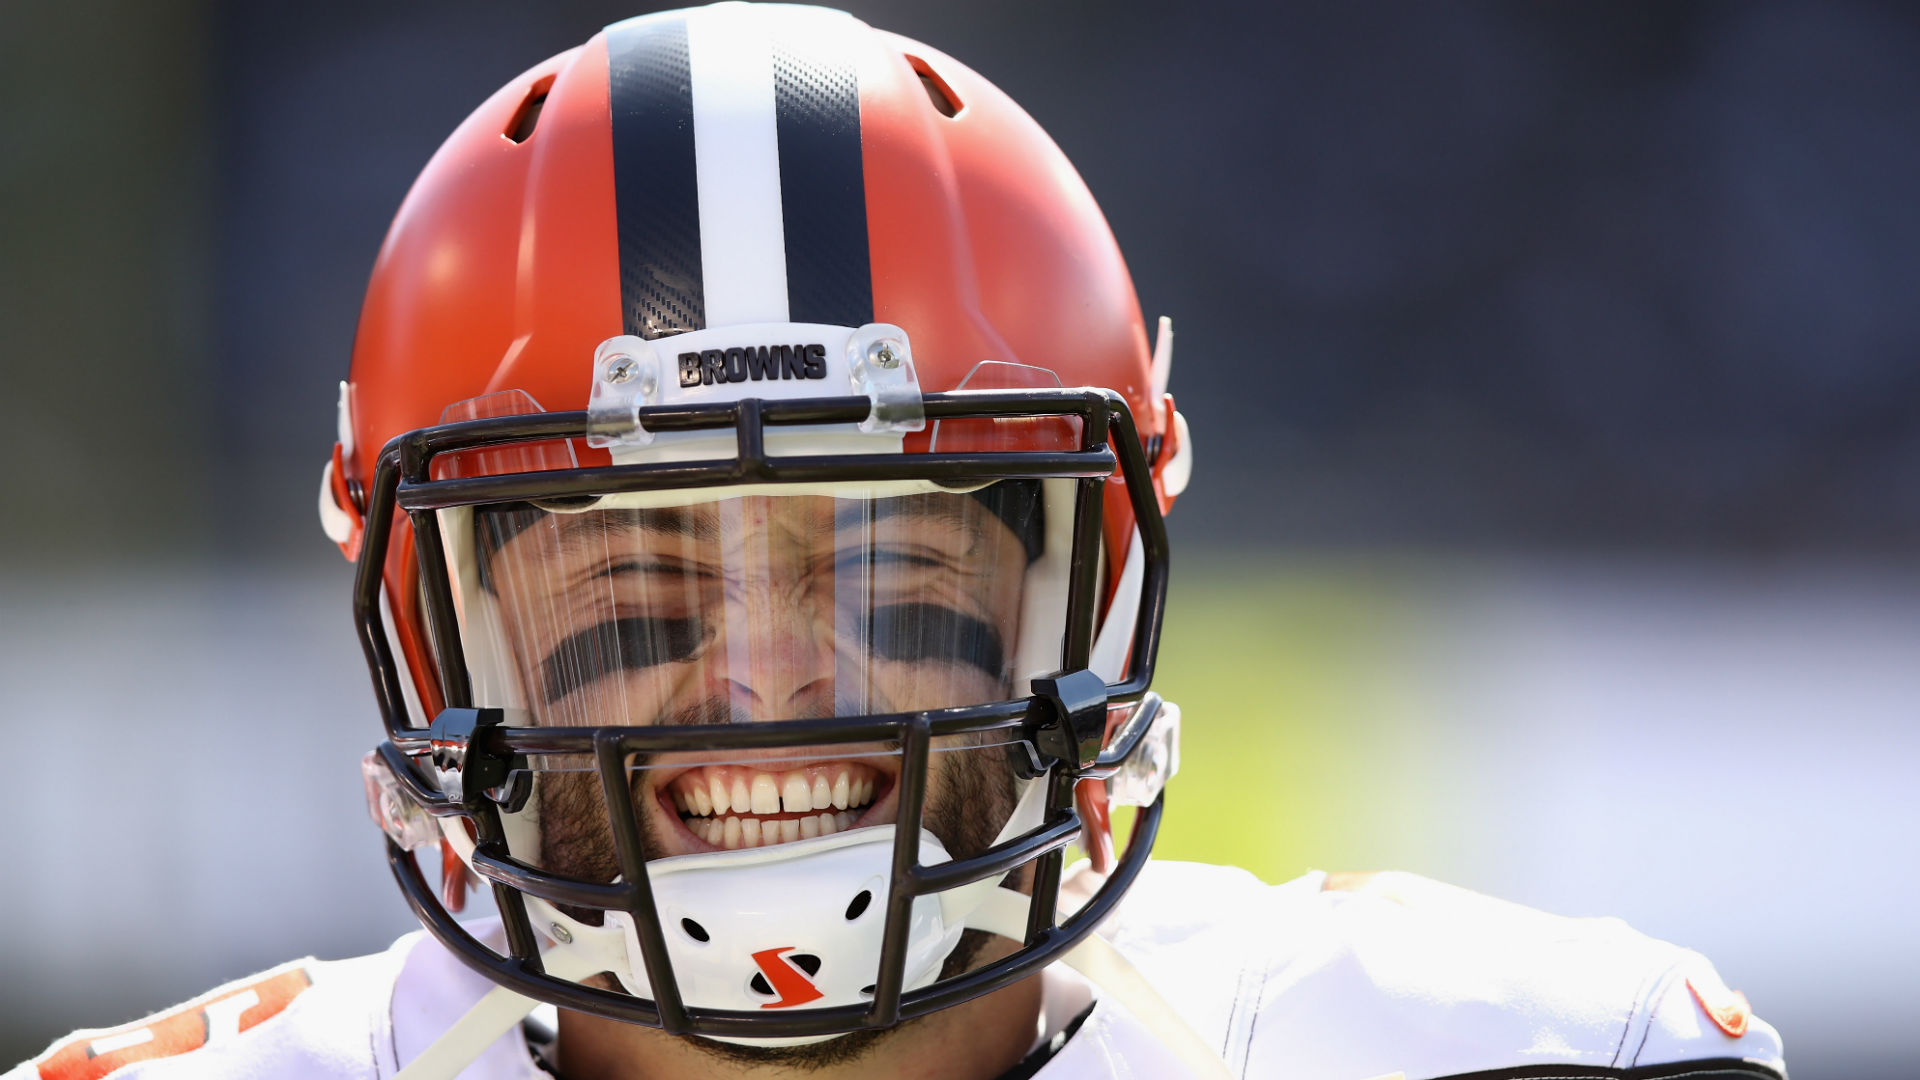 Baker Mayfield fined $10K by National Football League  for unsportsmanlike conduct